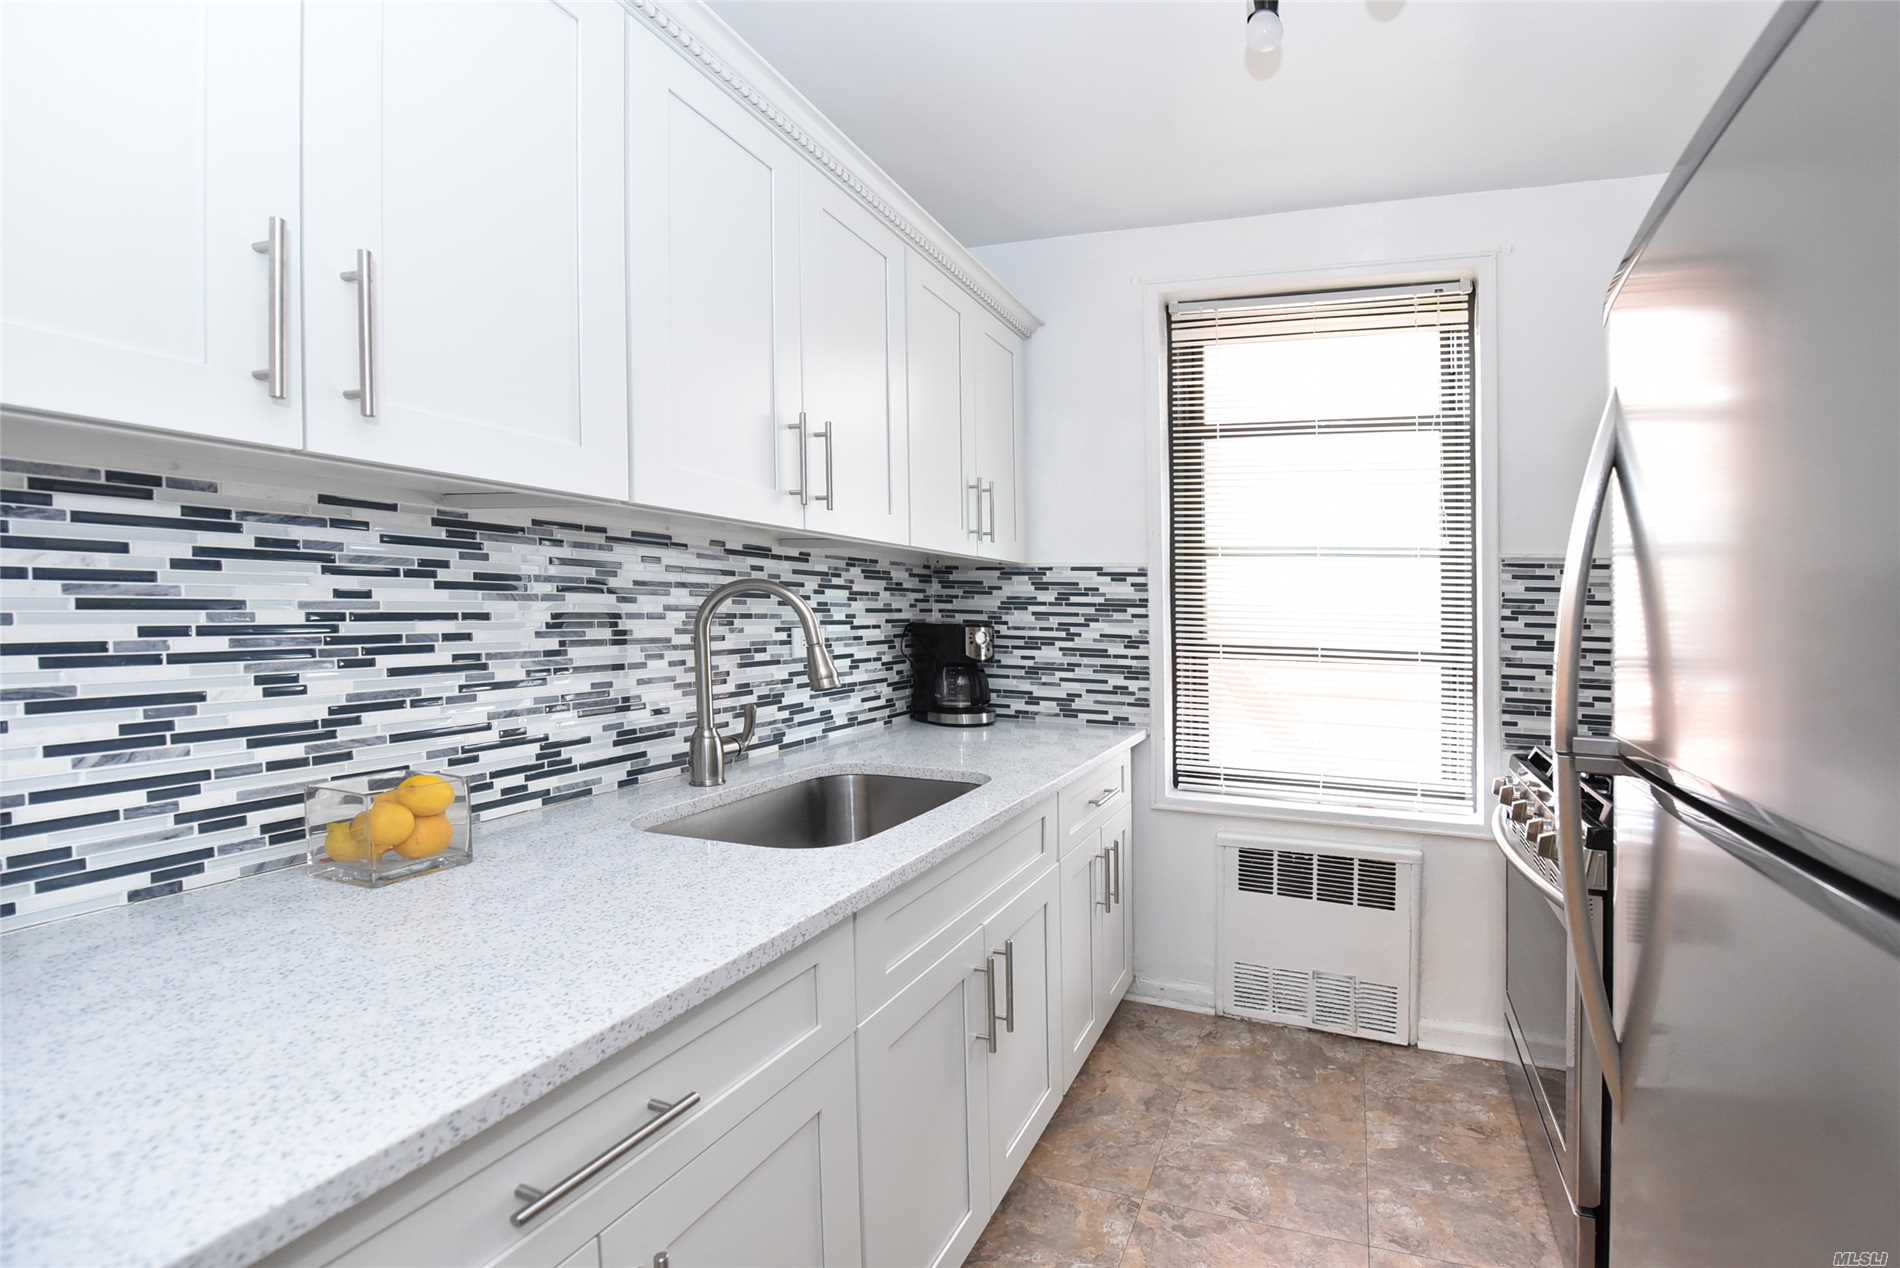 This is a large and renovated 1 bedroom 1 bath corner unit in the Eden Rock building. Windows all around, this south facing units offers an abundance of natural sunlight throughout the entire day. This pet friendly building features a doorman, laundry room, and a 24 hour gym. Conveniently located within minutes to buses, transportation, shopping, Briarwood Station, and the E and F trains.